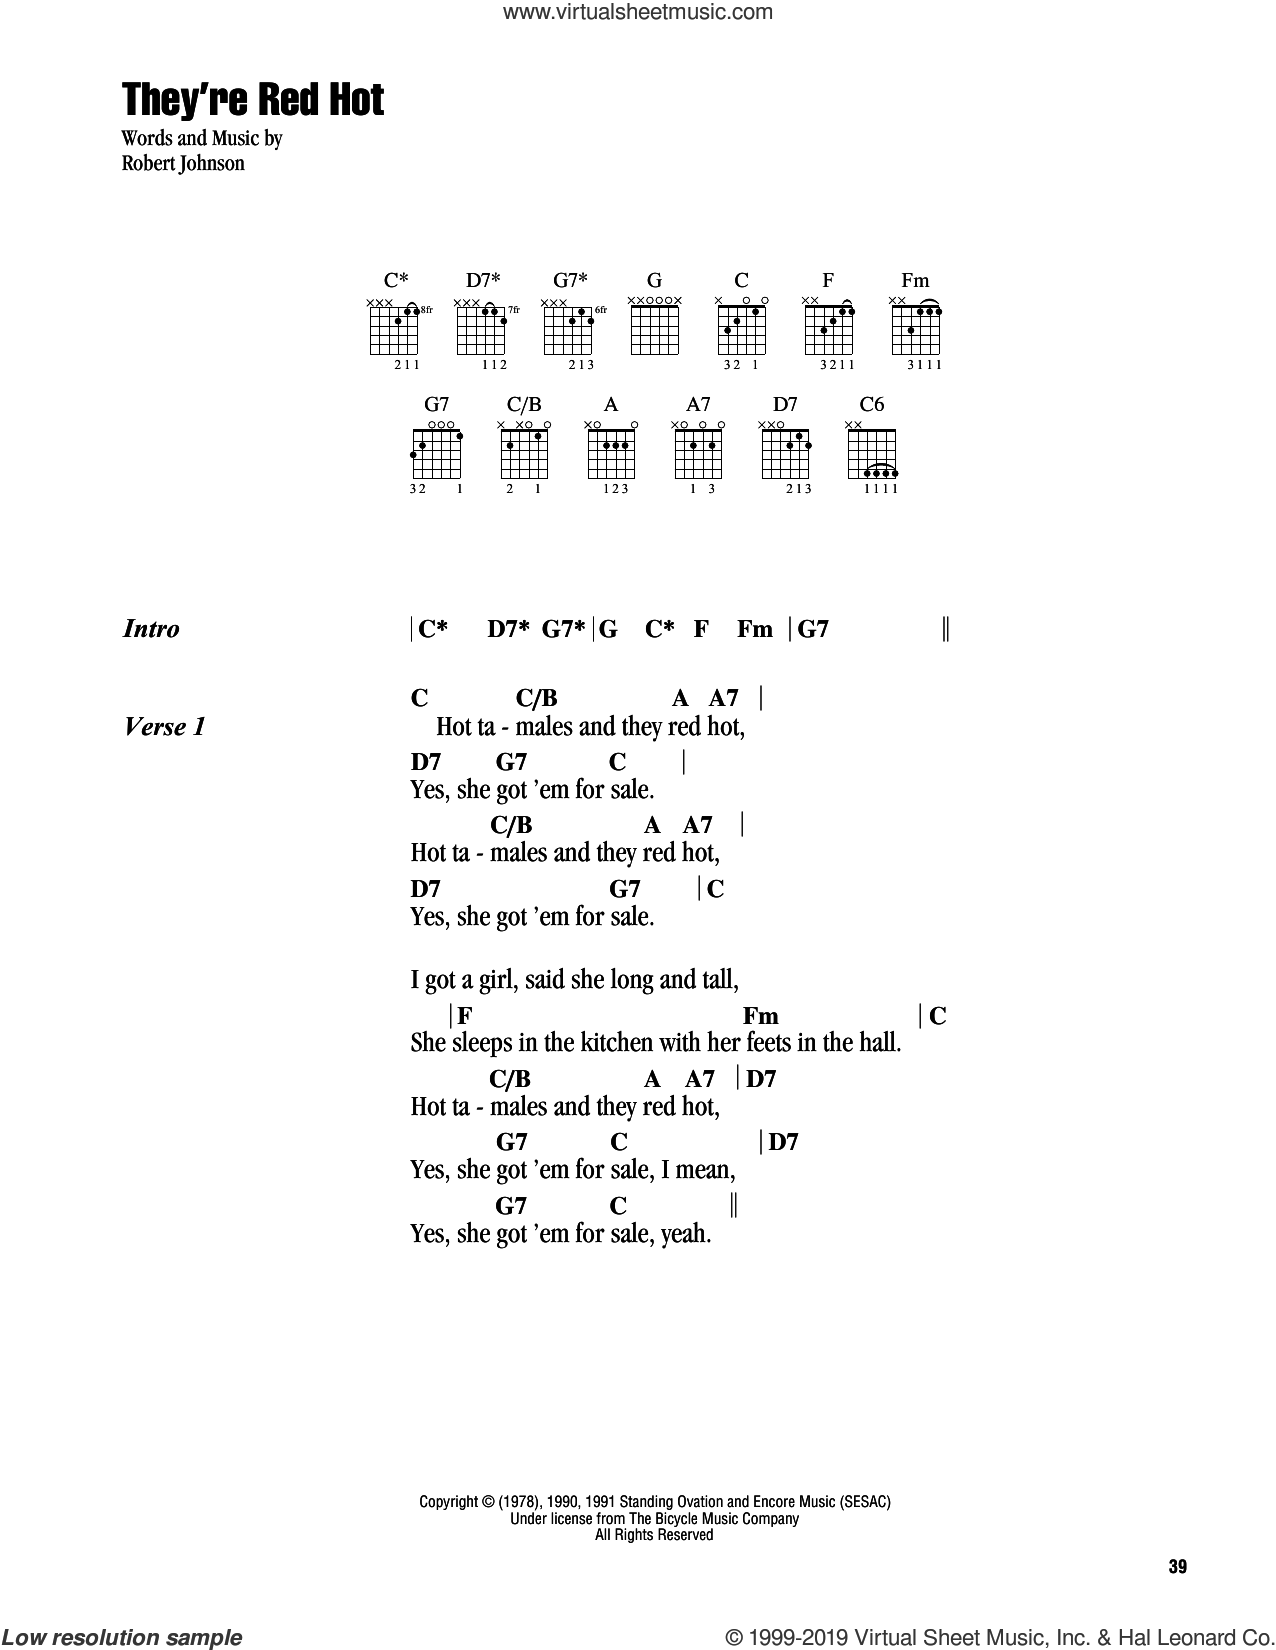 They're Red Hot sheet music for guitar (chords) by Robert Johnson, intermediate skill level